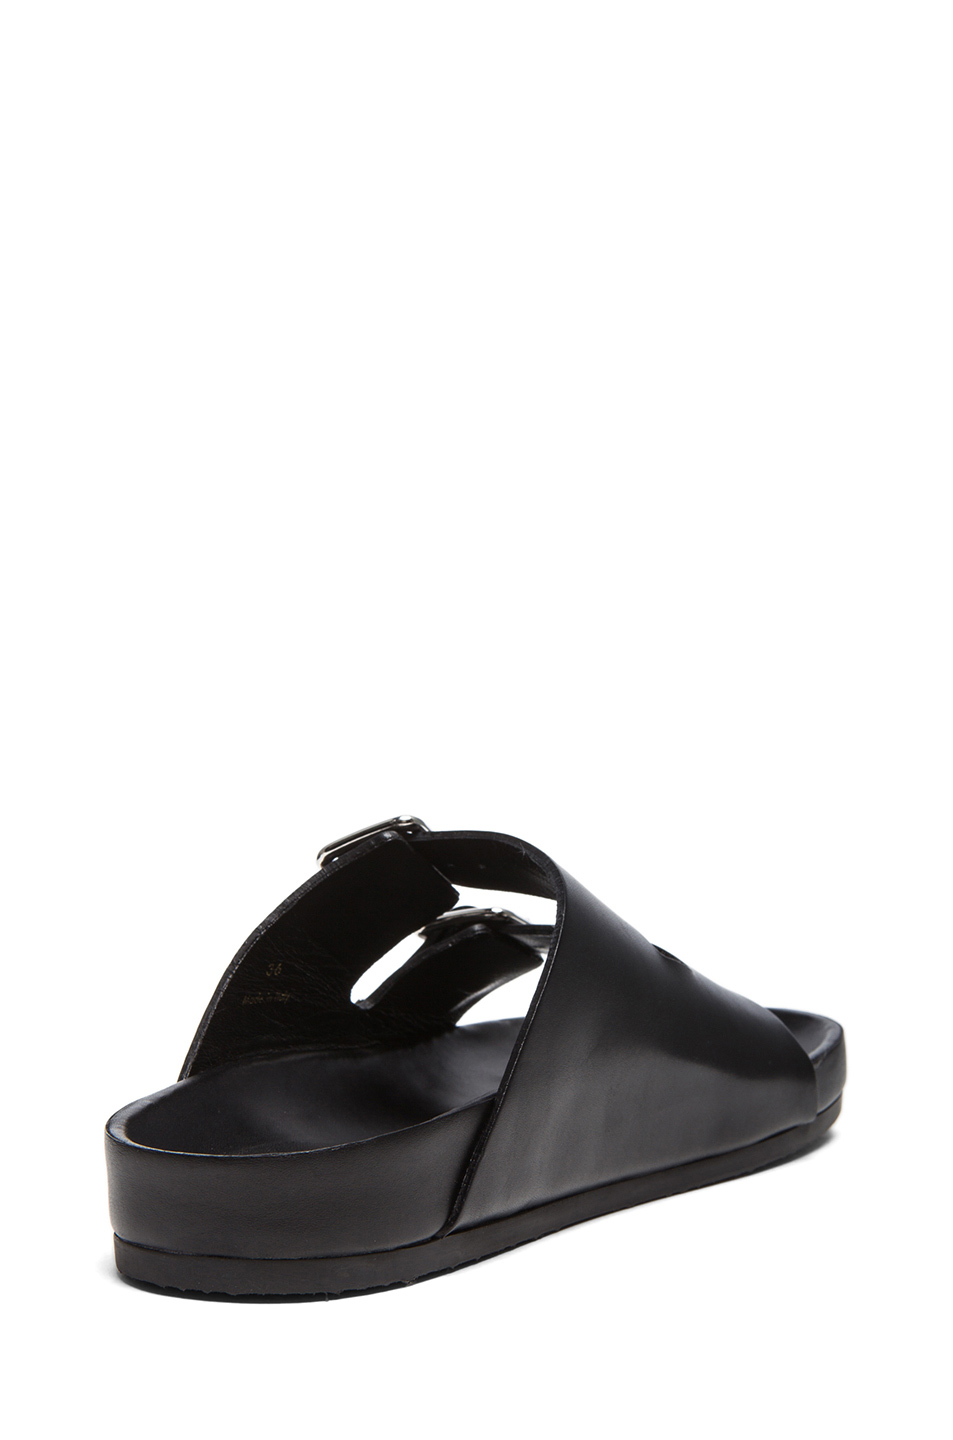 GIVENCHY|Barka Casual Calfskin Leather Sandals in Black